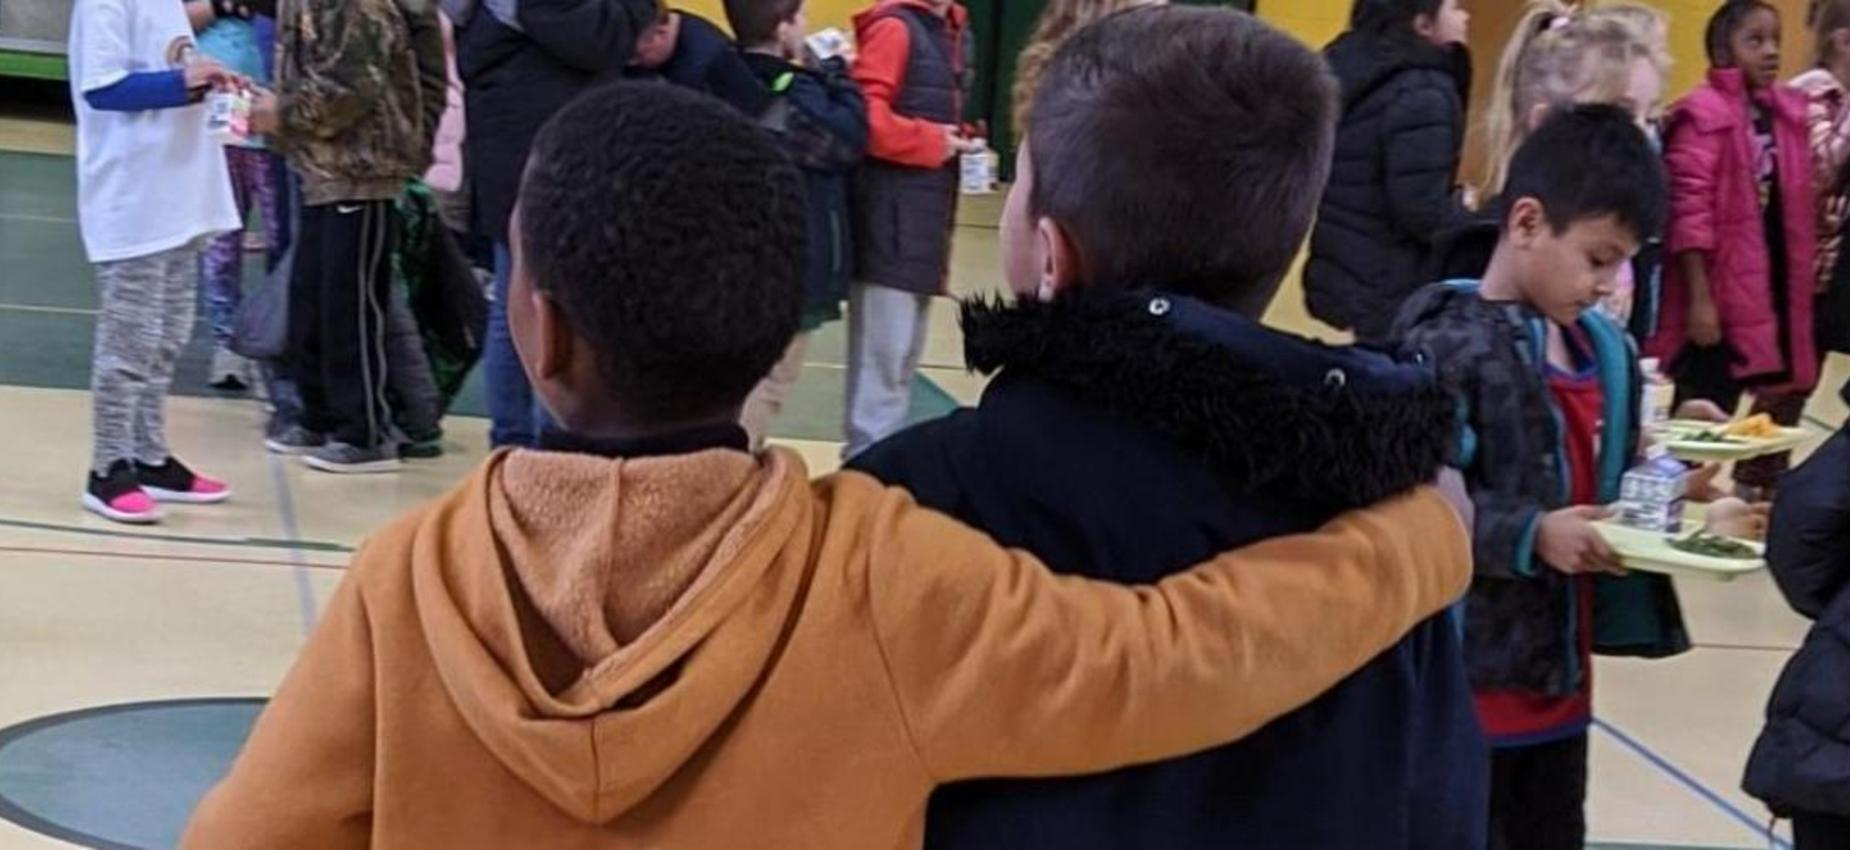 Student with arm around another